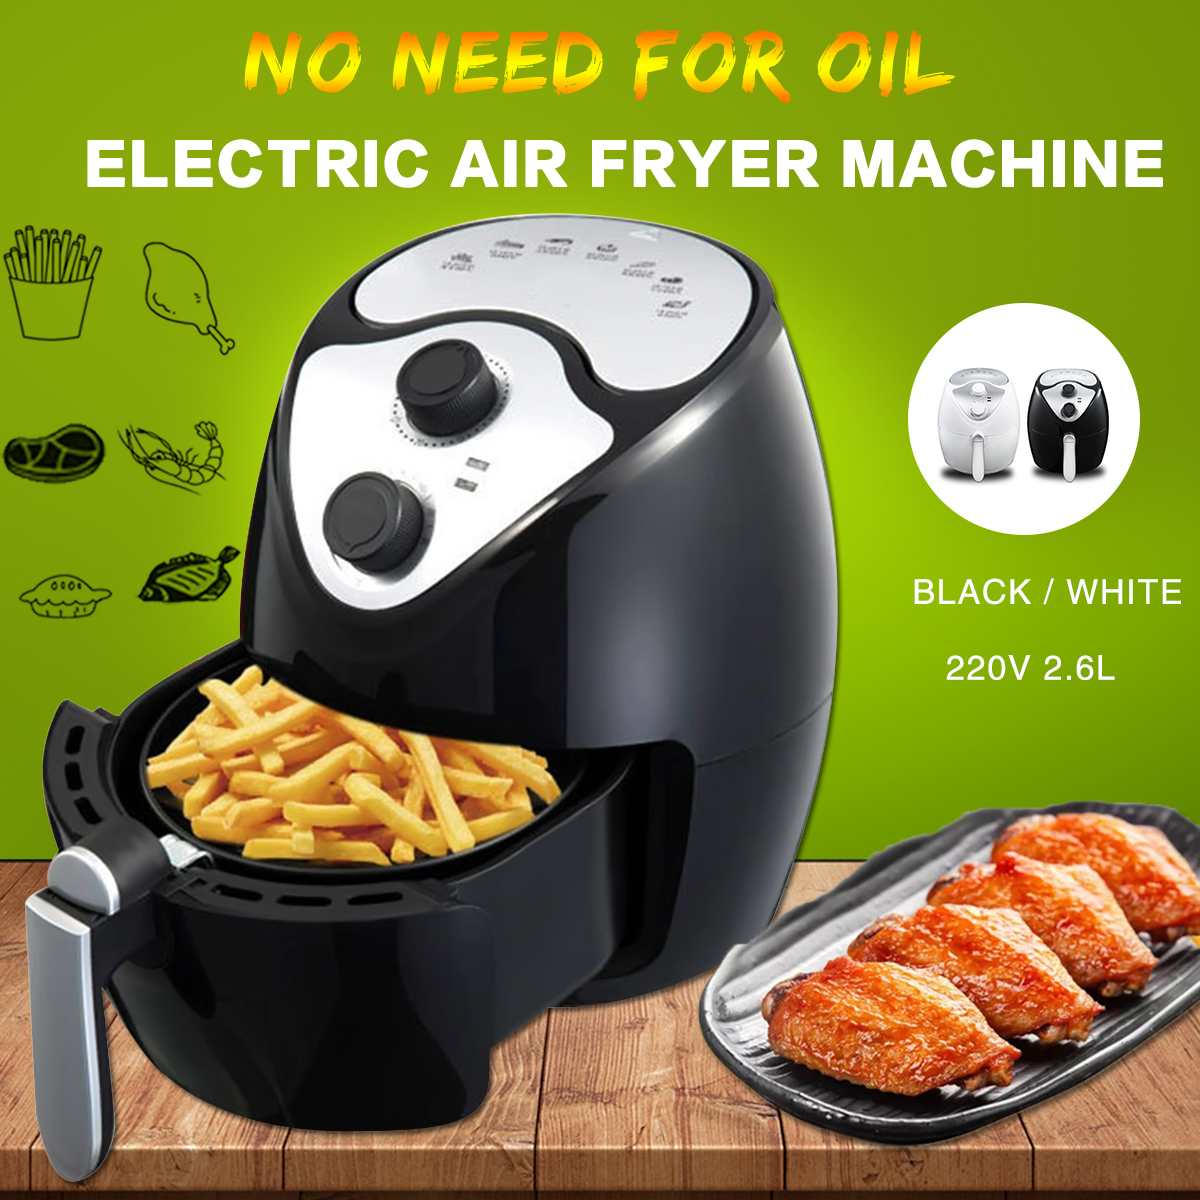 2.6L 220V 1270W Electric Deep Air Fryer Machine Household Intelligent Smokeless No Oil Fries Barbecue Health Cooker Machine Tool цена и фото